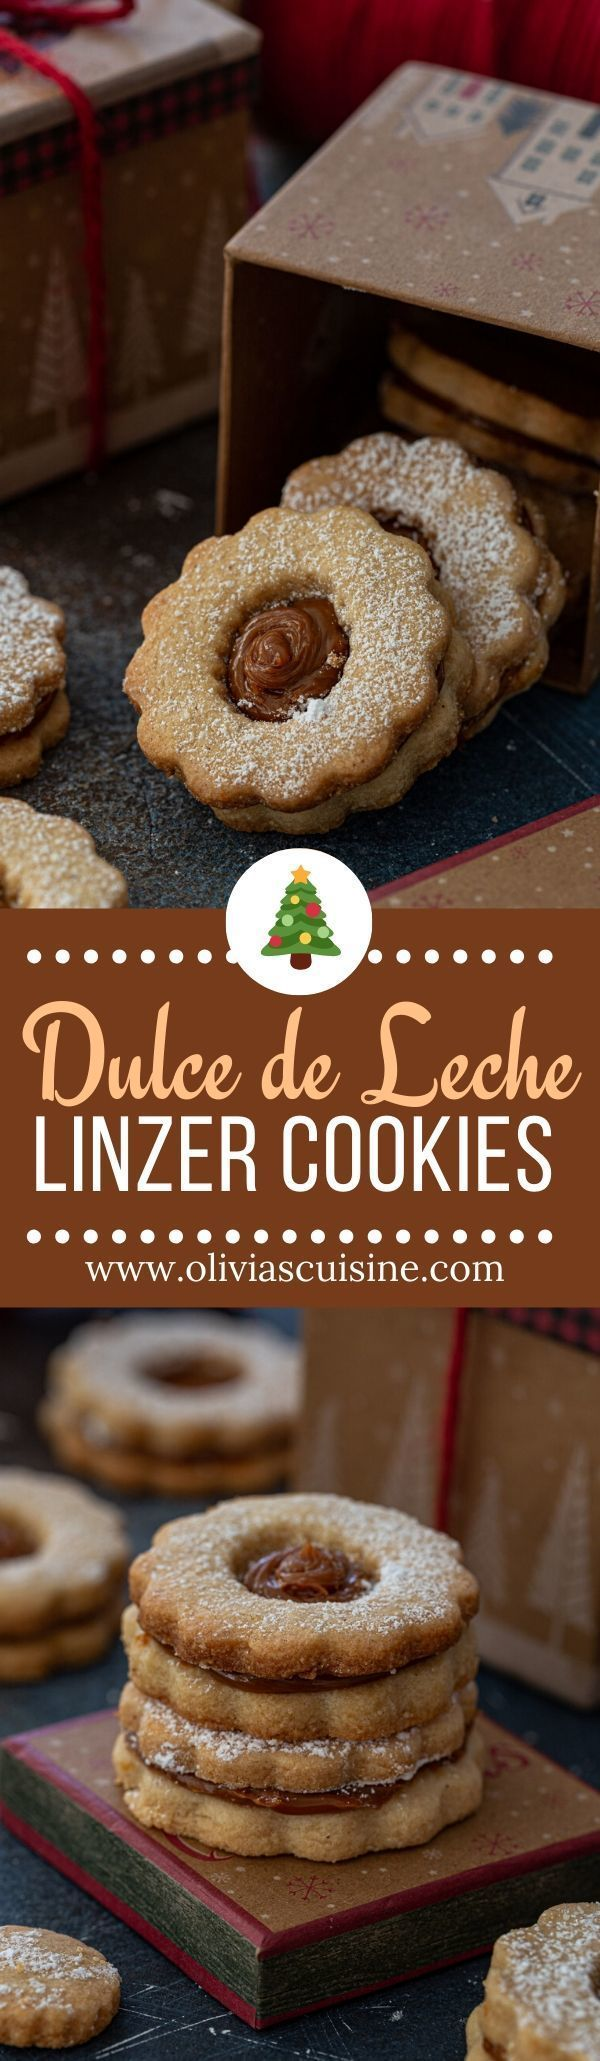 Dulce de Leche Linzer Cookies | www.oliviascuisine.com | Take your holiday cookie baking to the next level with these Dulce de Leche Linzer Cookies! Lightly spiced and filled with indulgence (aka dulce de leche), they are the perfect Christmas treat. (Follow @oliviascuisine for more delicious holiday recipes!) #linzercookies #linzer #cookies #dulcedeleche #christmas #baking #holidays